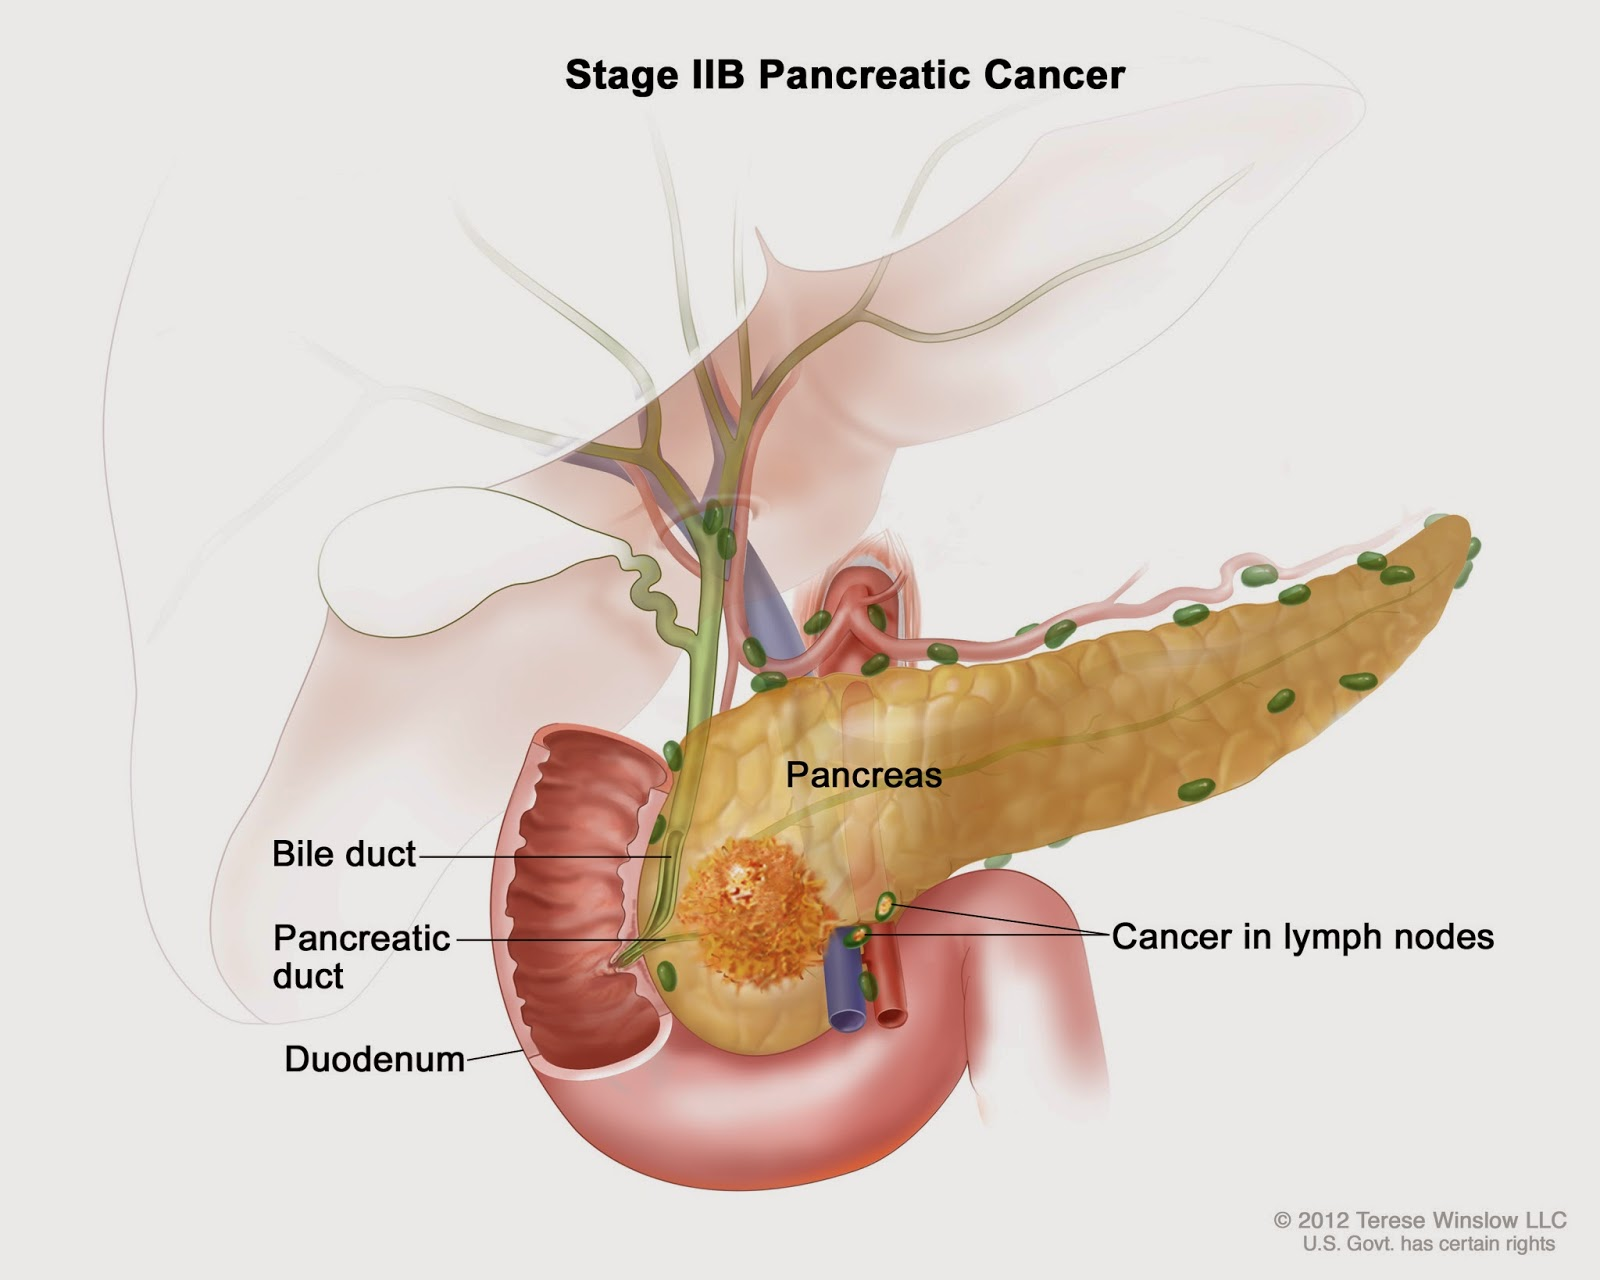 Study Sheds Light On What Makes Pancreatic Cancer So Aggressive